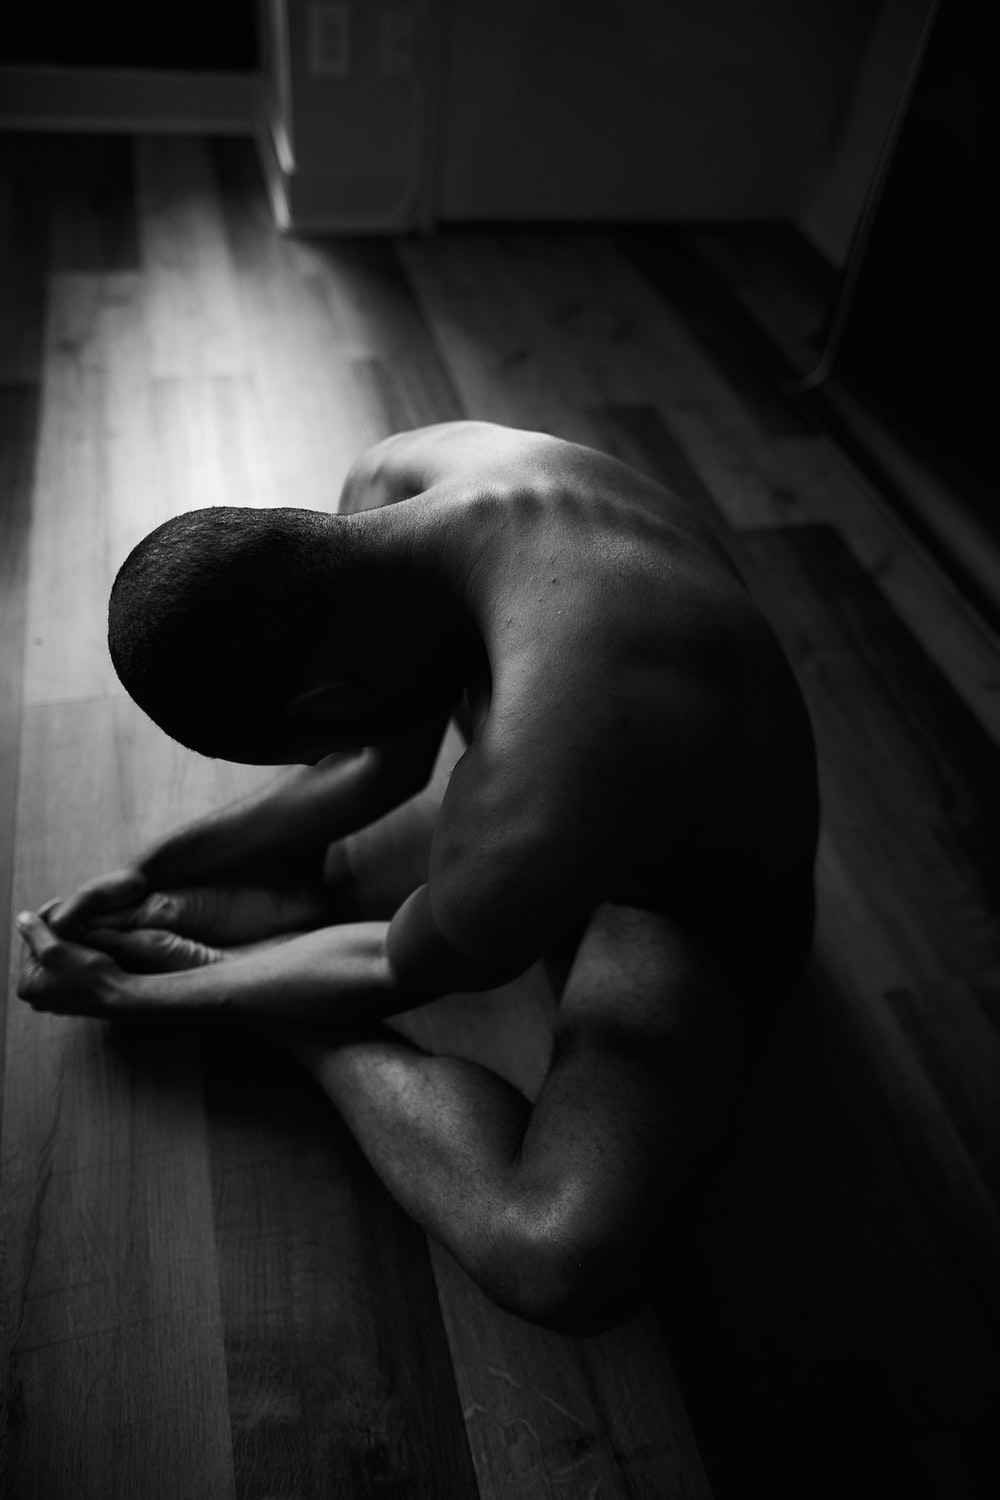 grayscale photo of man kneeling on floor